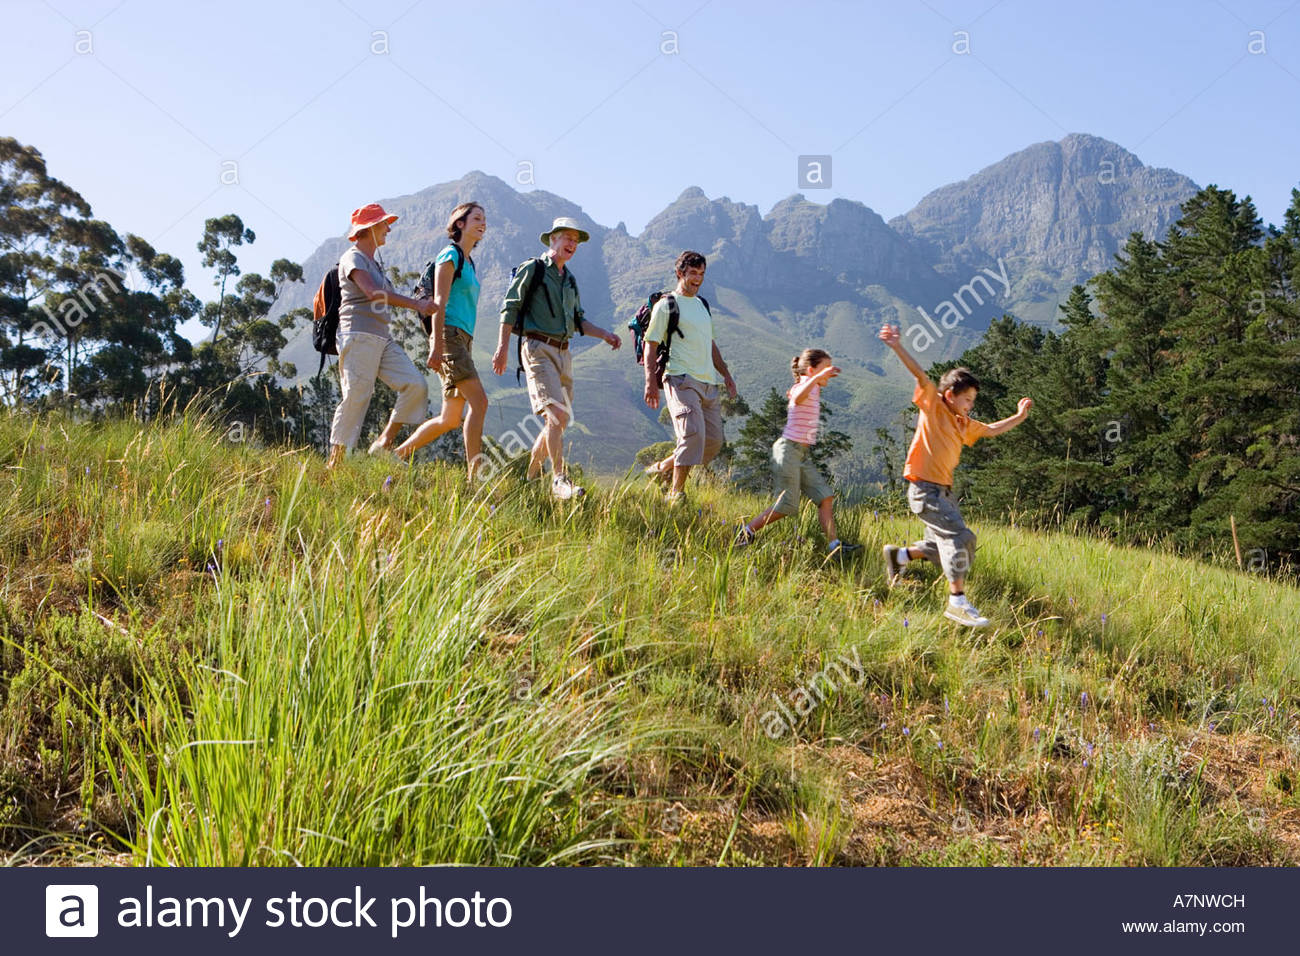 Multi generational family hiking on mountain trail walking in line boy 8 10 leading side view - Stock Image